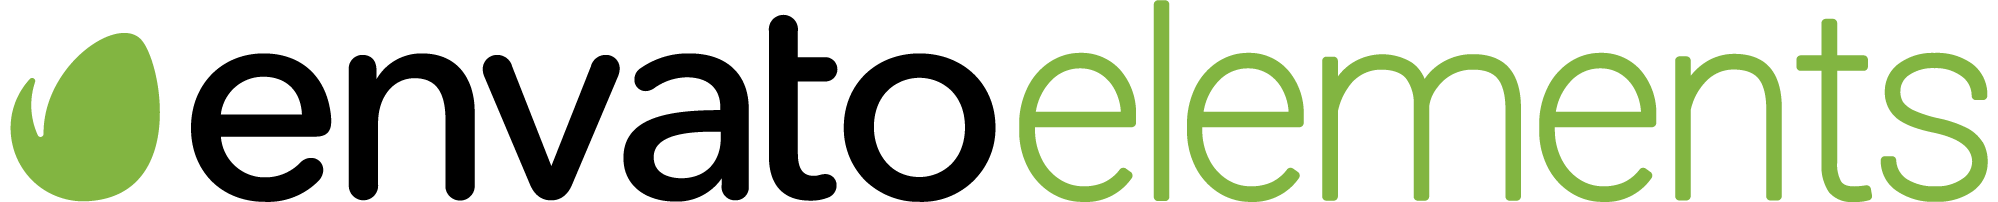 Envato Elements Logo